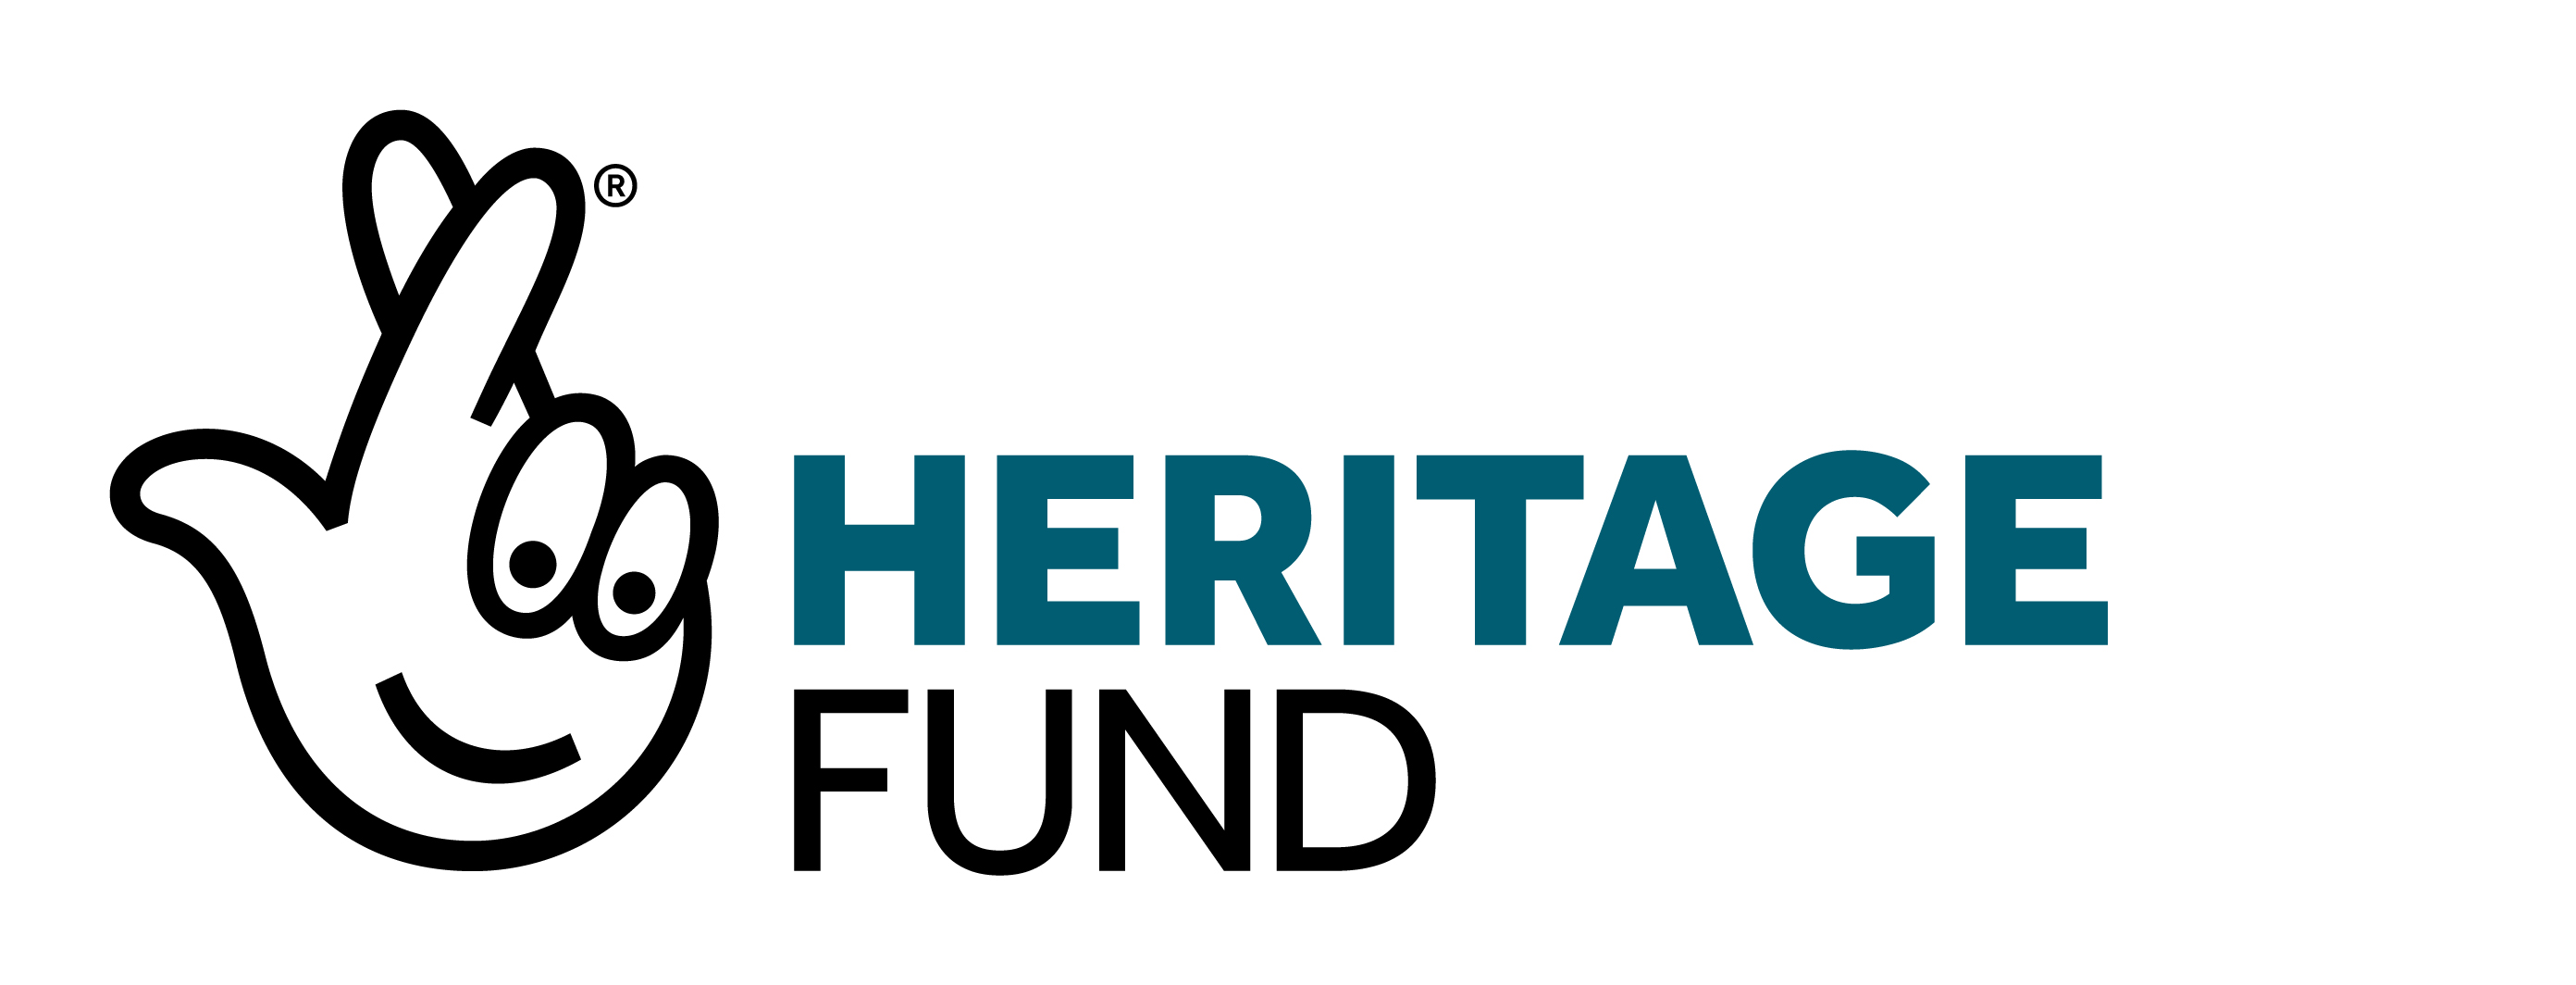 National Heritage Lottery Fund logo